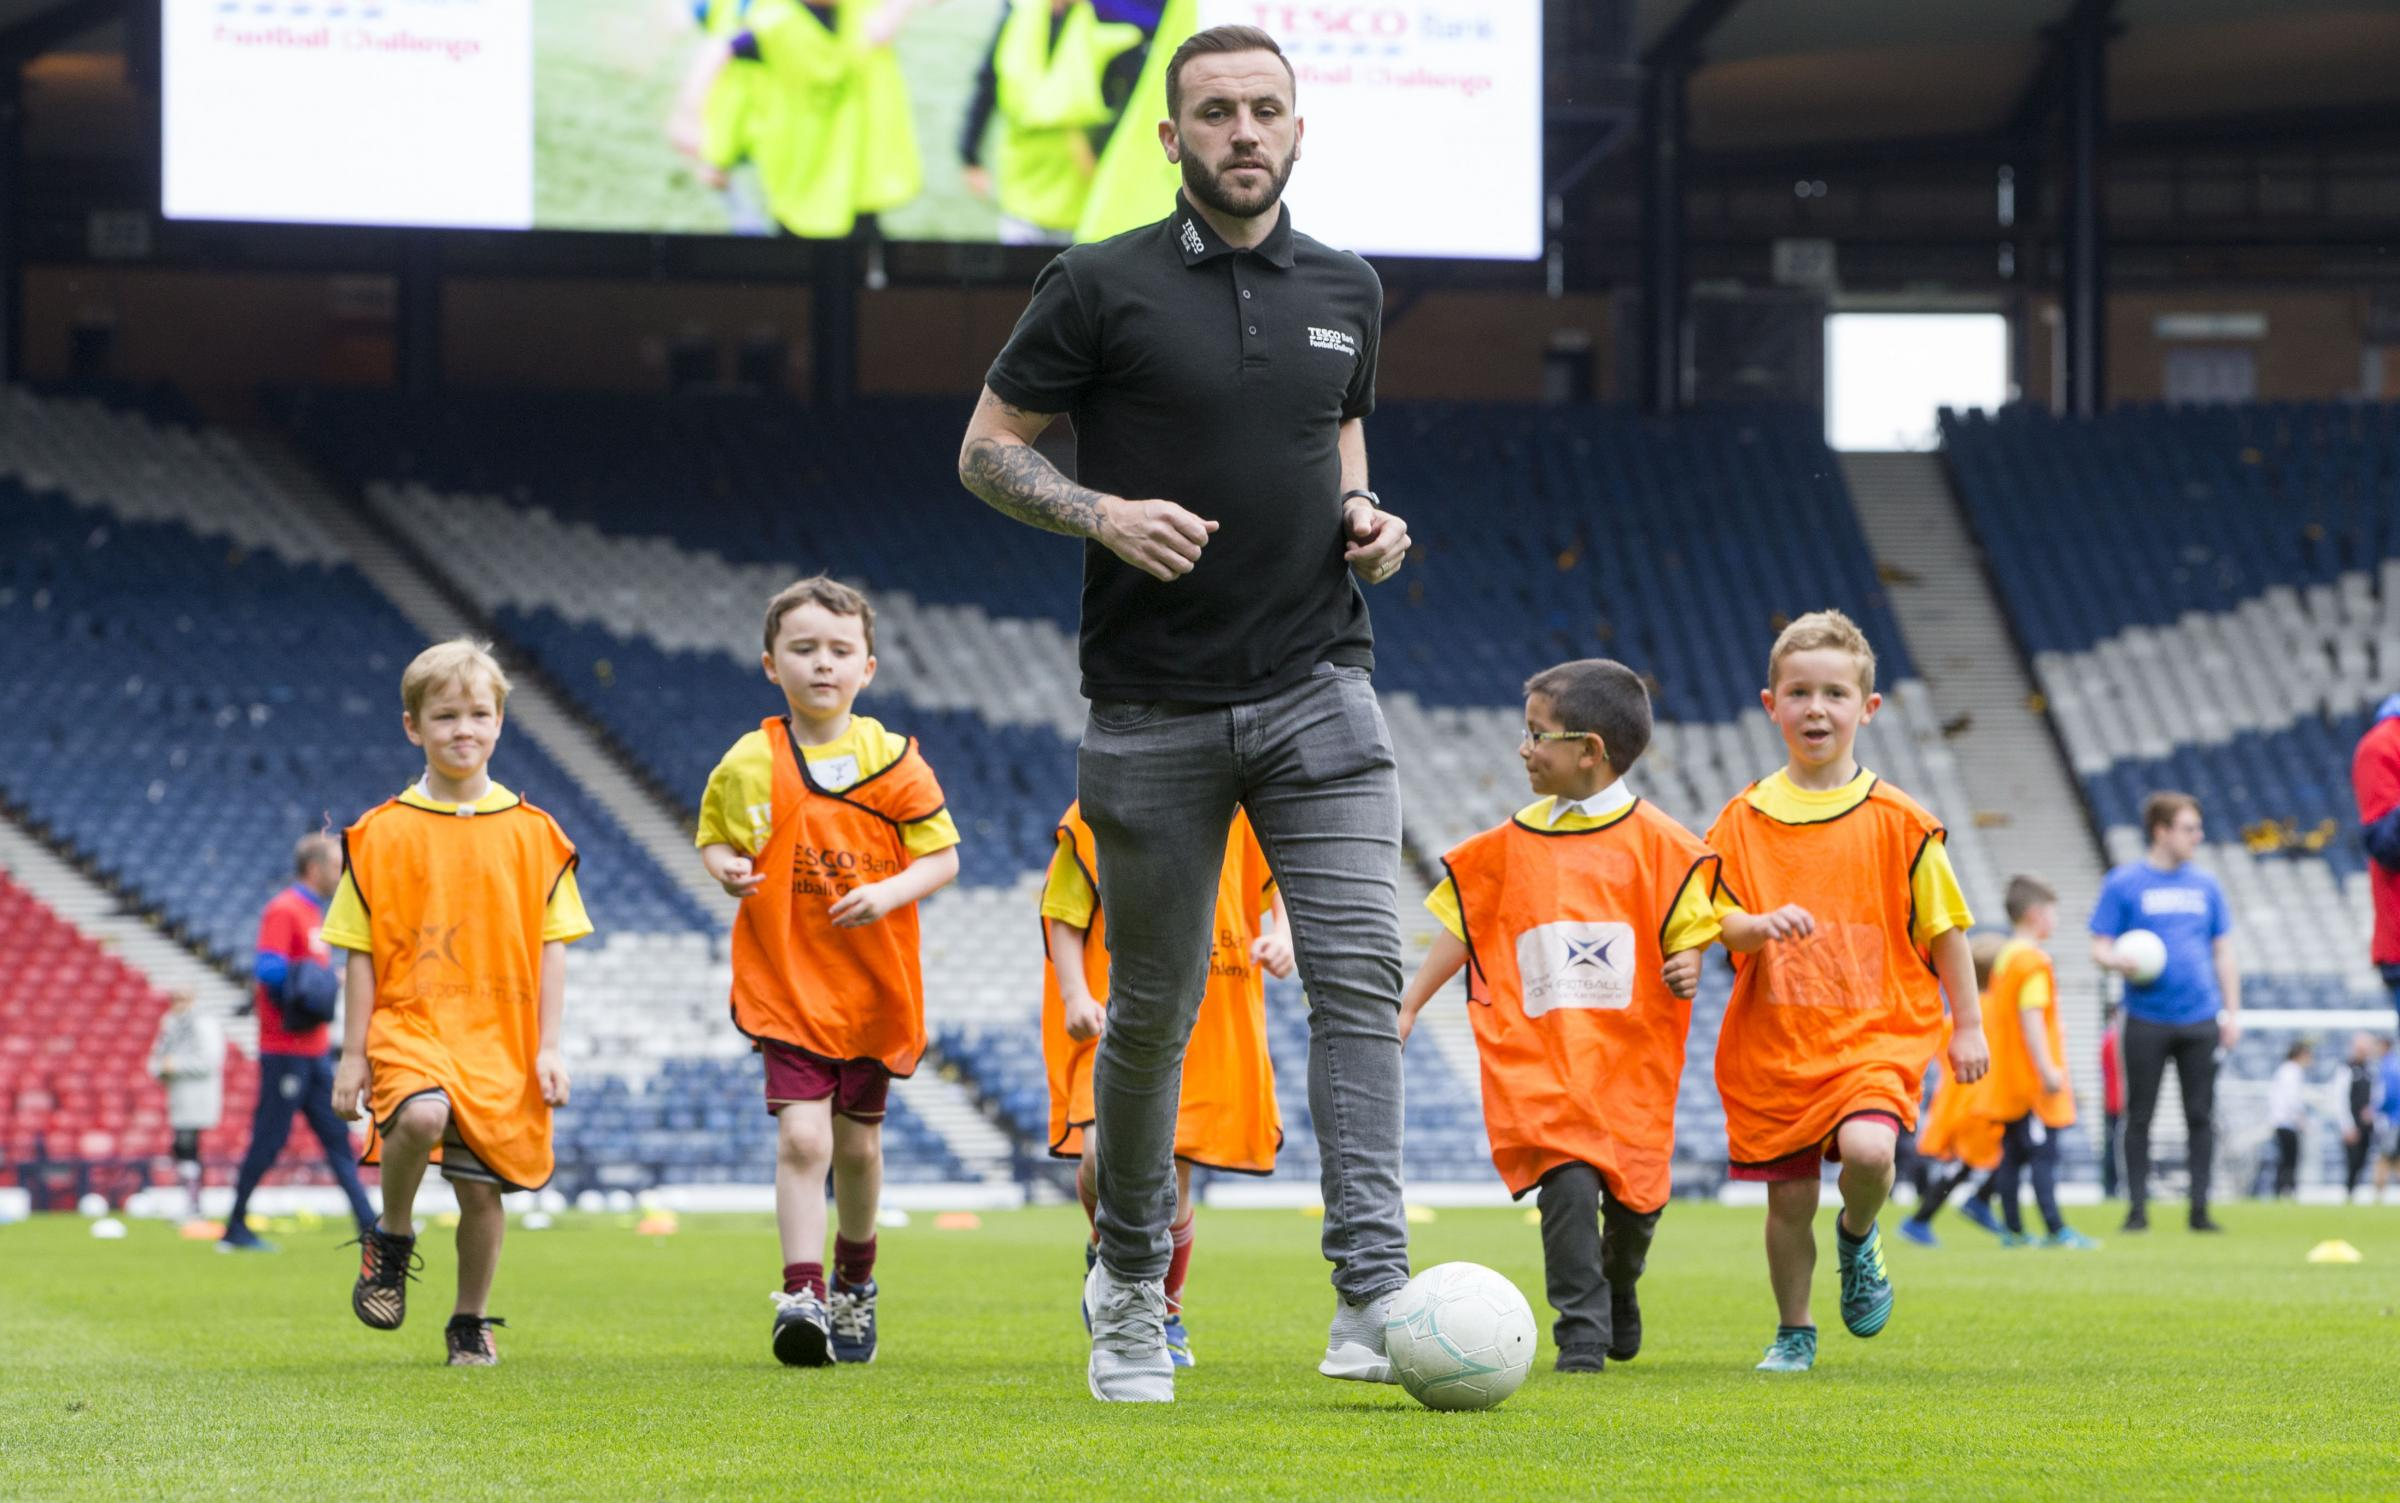 Scotland coach James McFadden showed some schoolkids how to play during the Tesco Bank Football Challenge National Festival at Hampden yesterday.